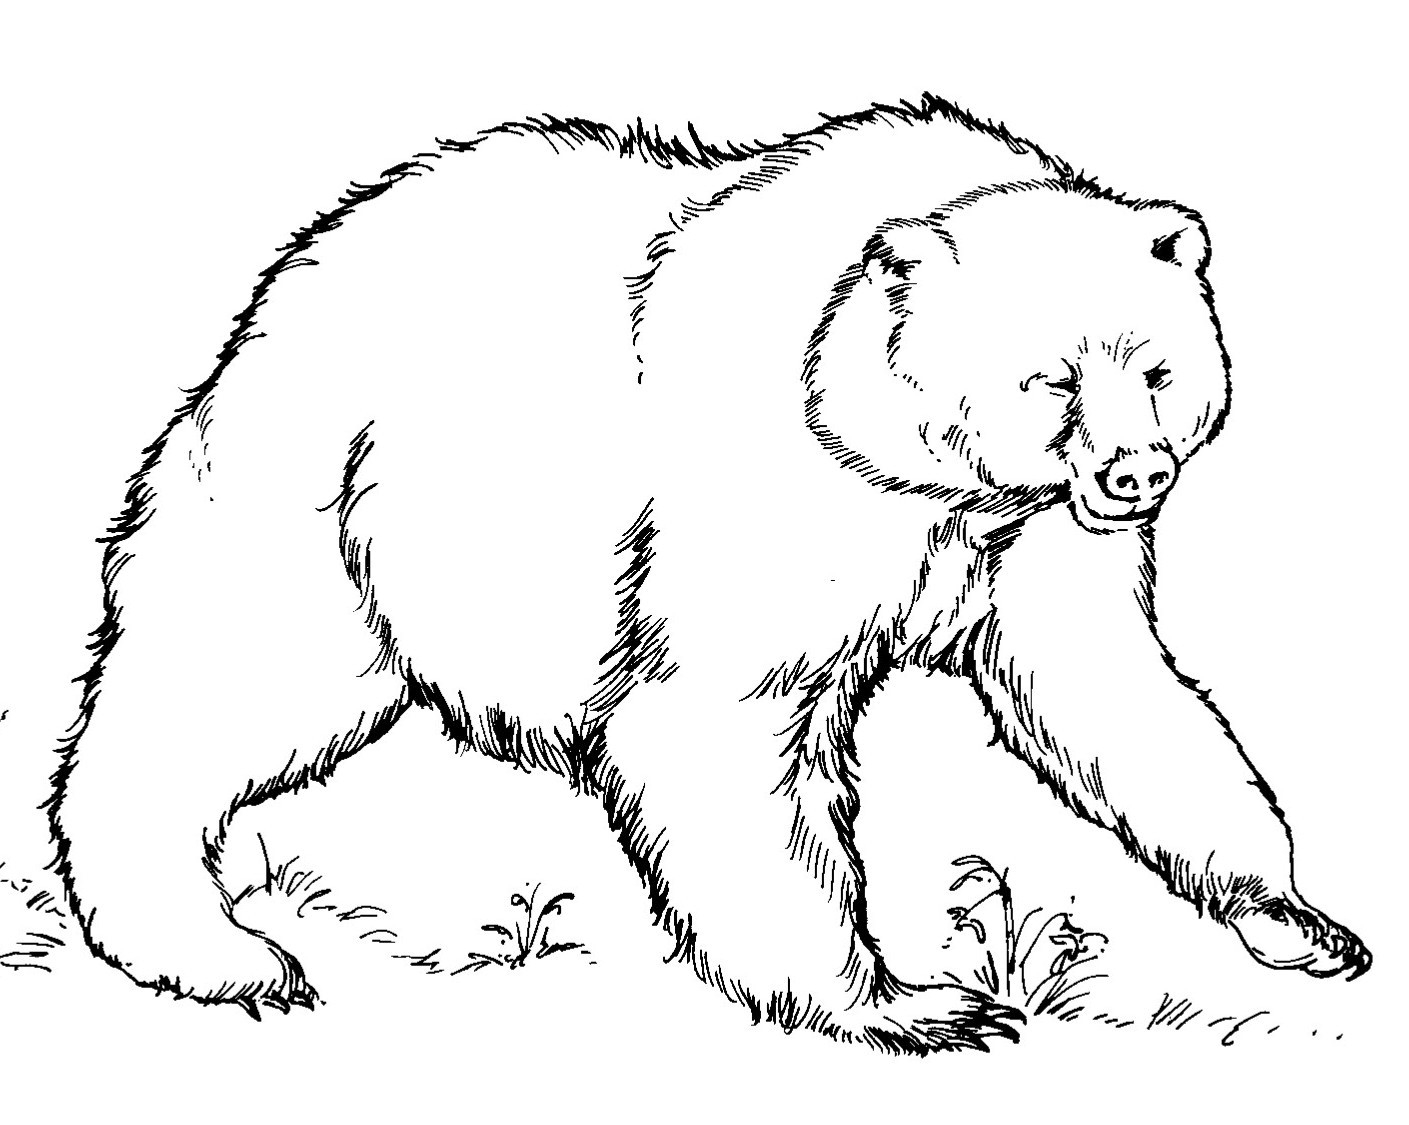 grizzly bear coloring page - grizzly bear coloring page printable sketch templates